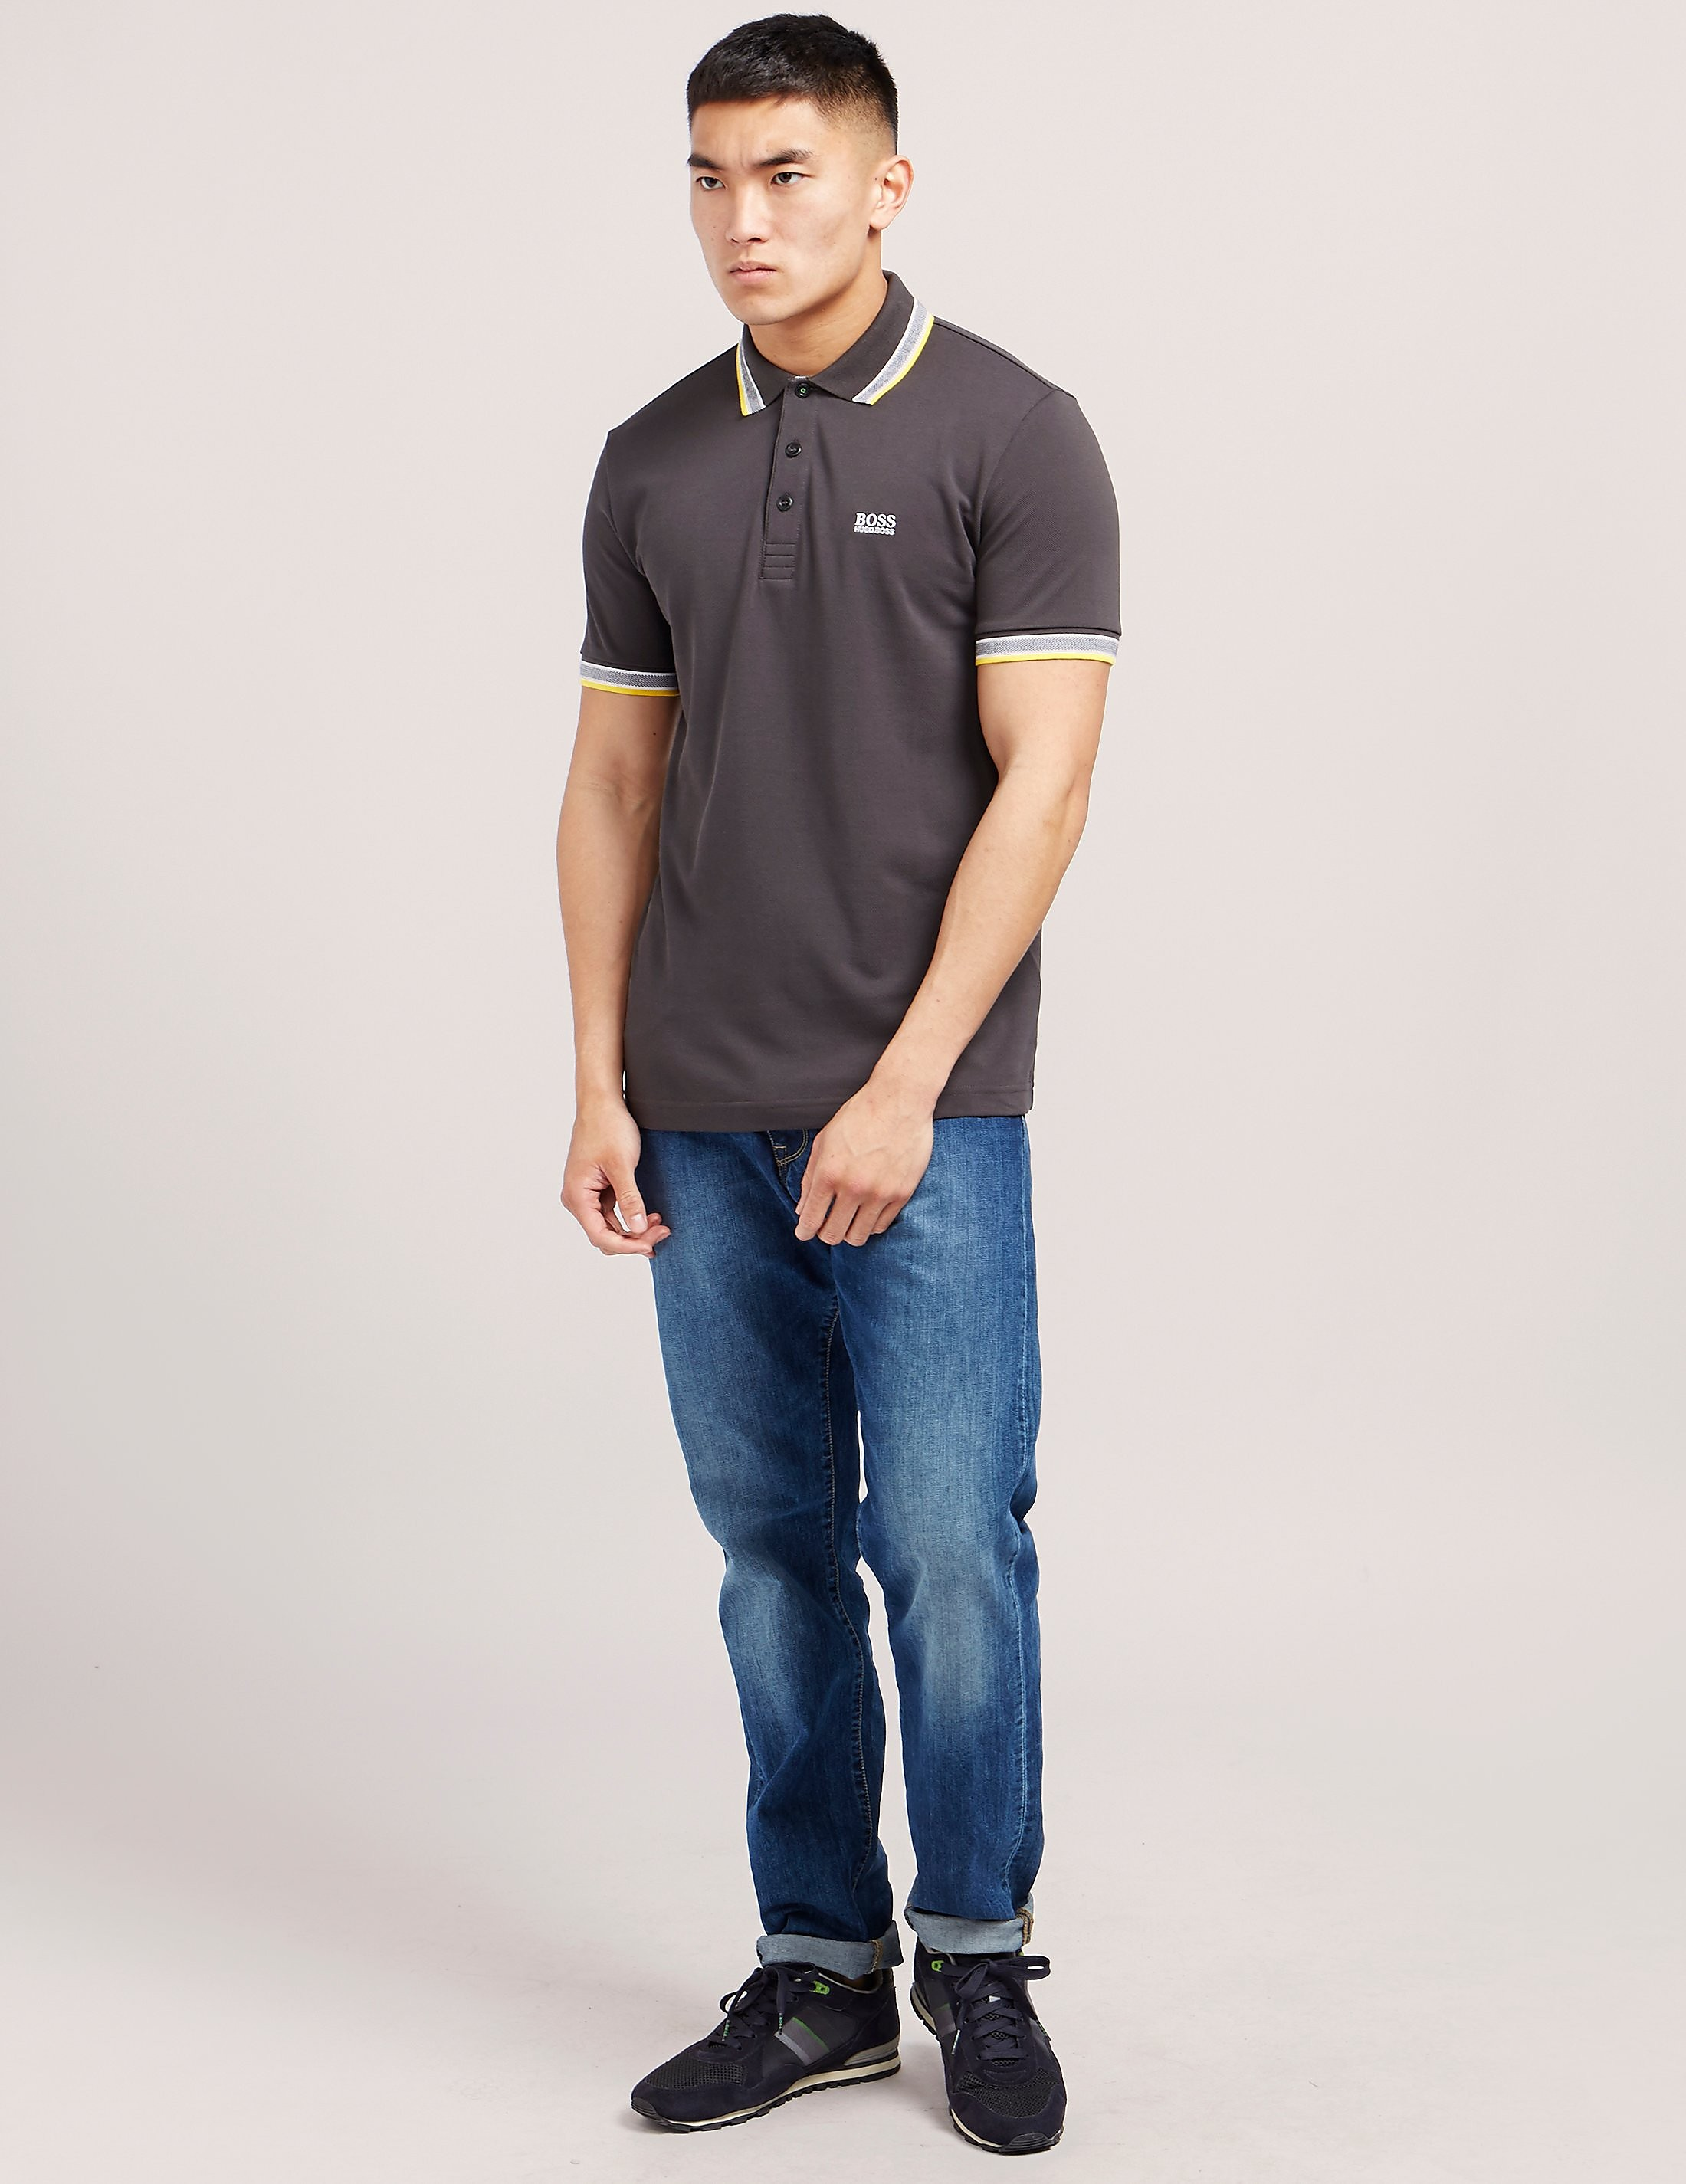 BOSS Green Paddy Short Sleeve Polo Shirt